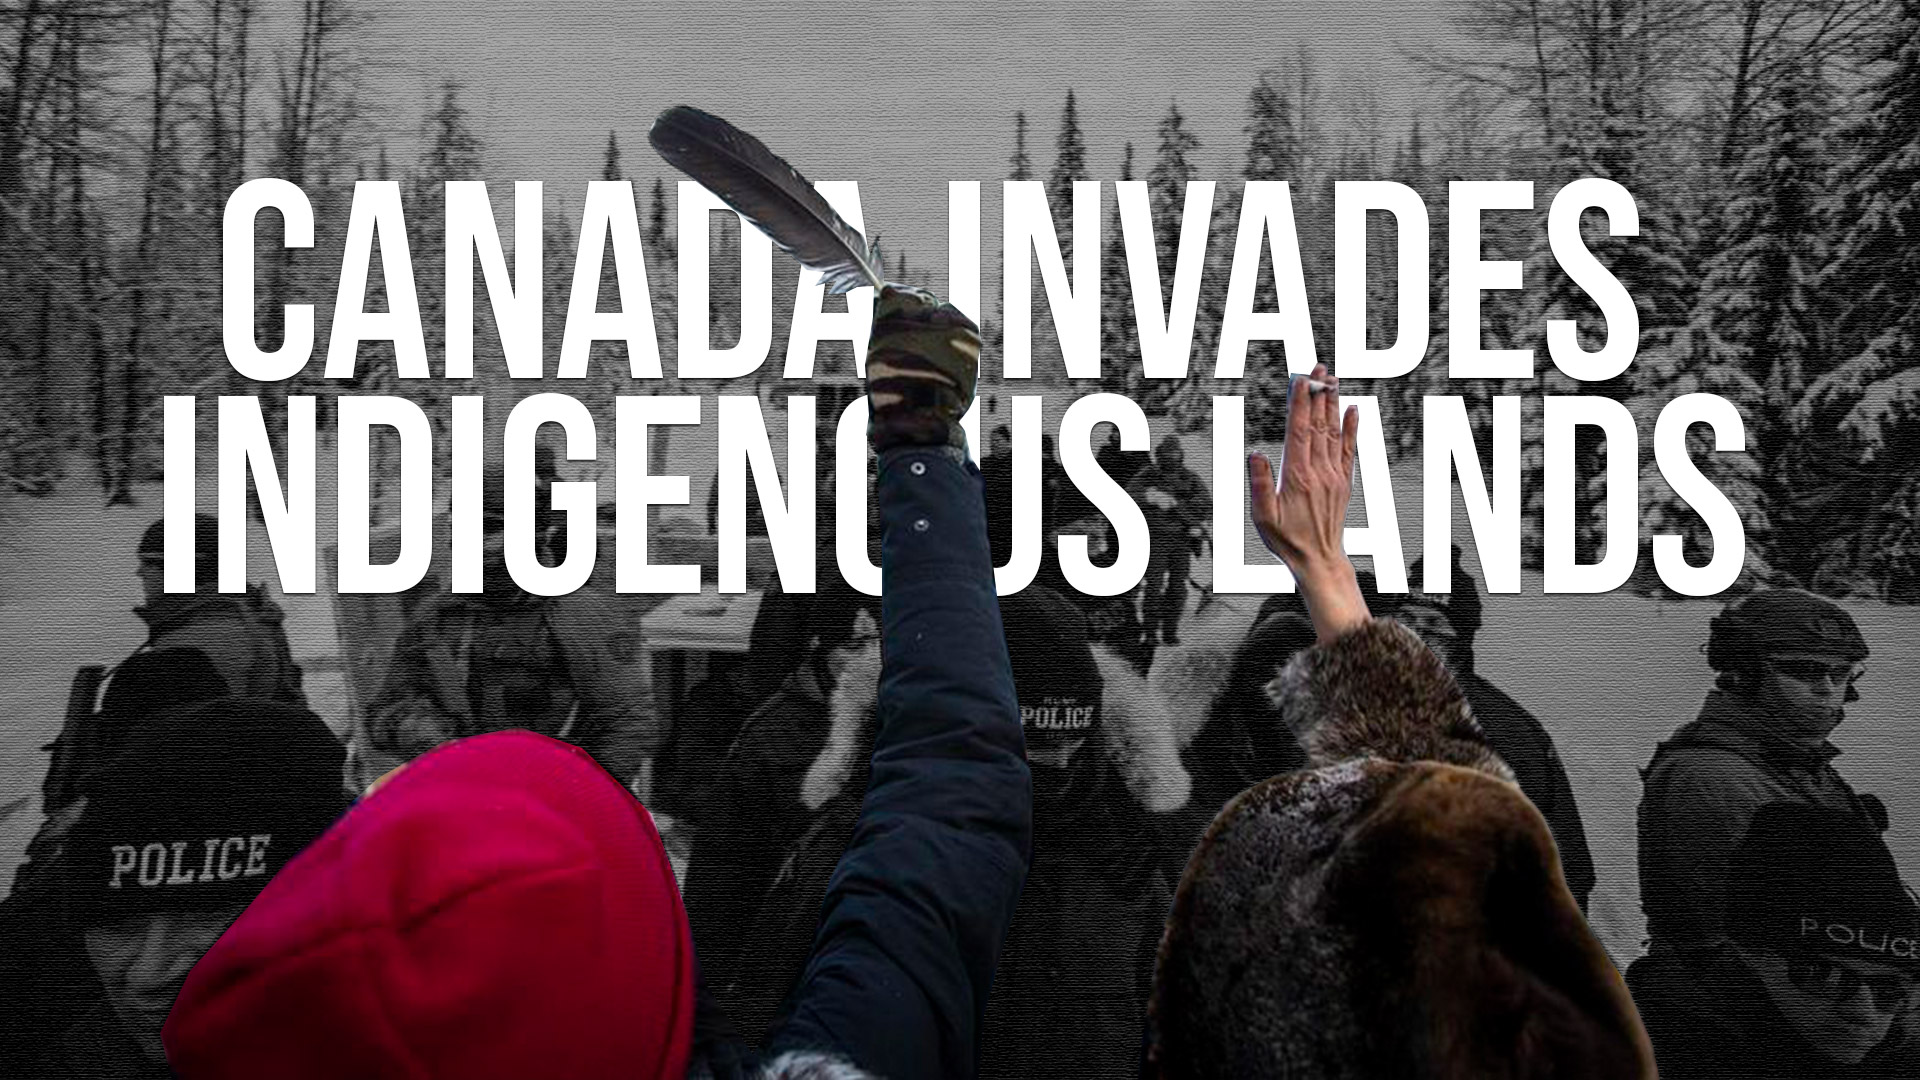 Canada Invades Indigenous Lands